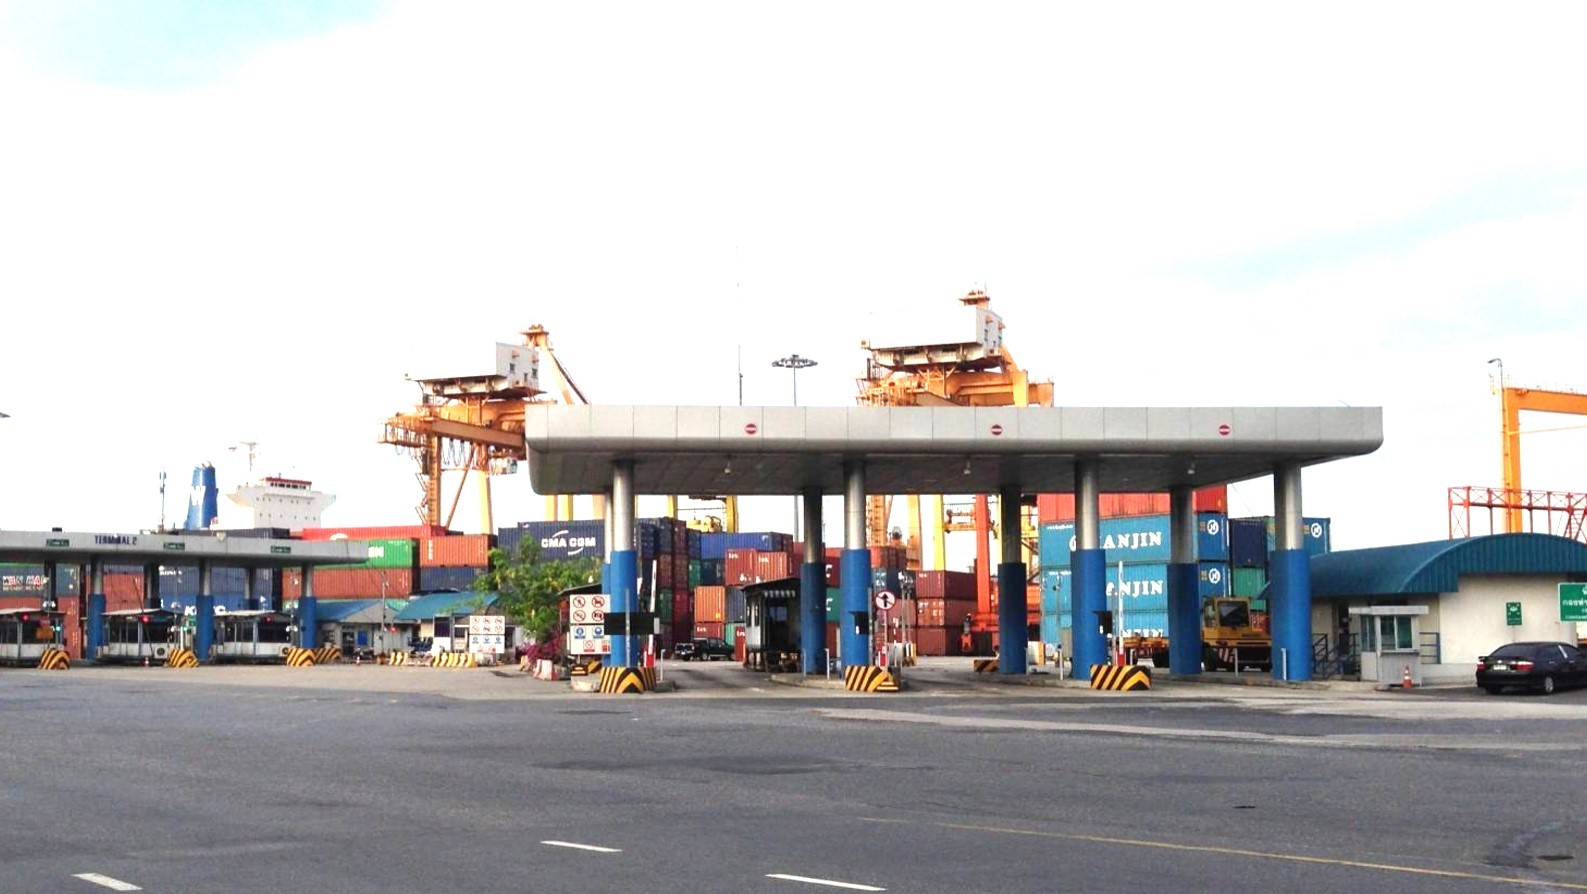 Bangkok Port installs Digital Truck Scales for Inbound Containers